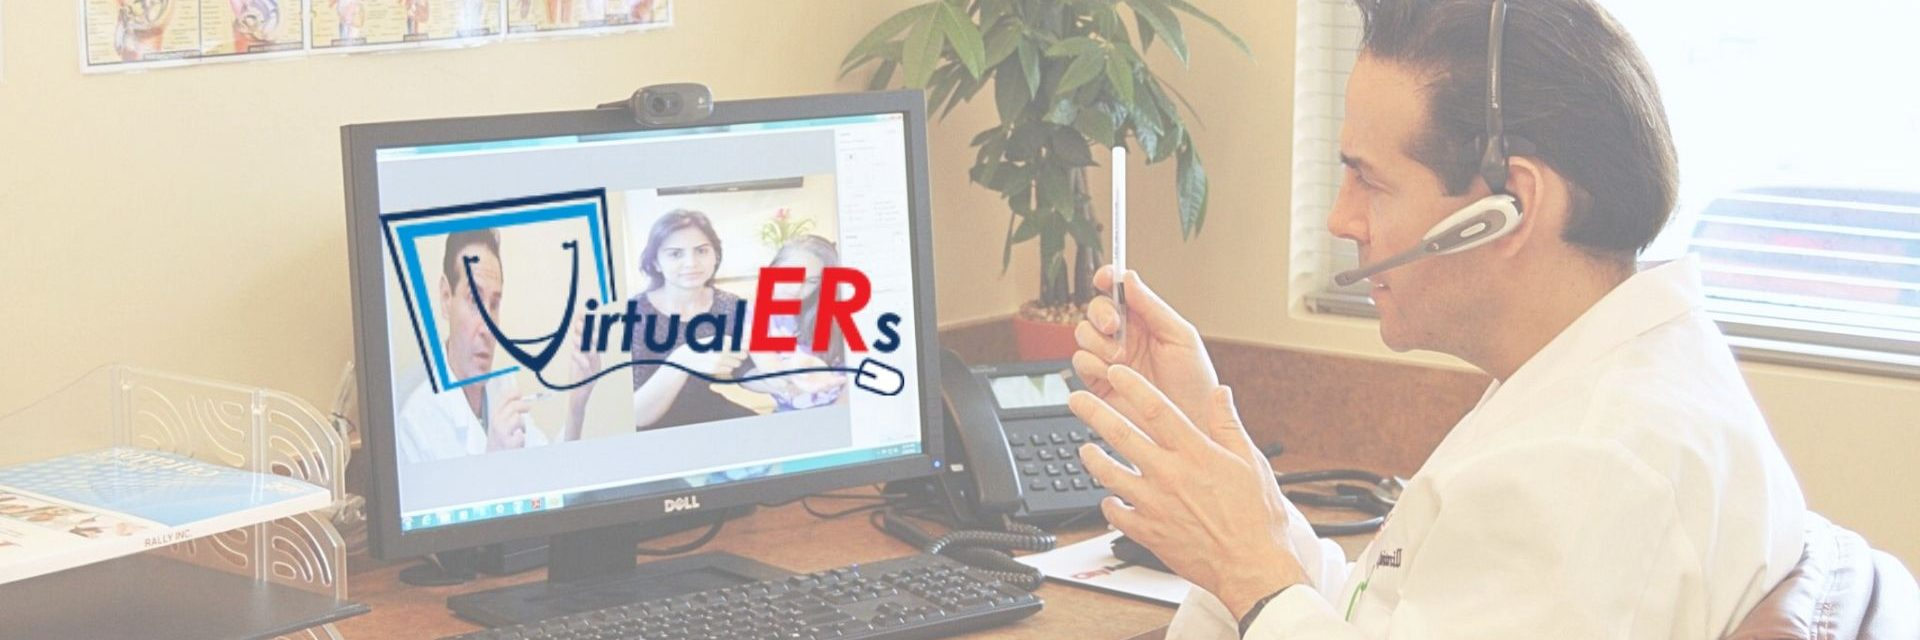 VirtualERs.com</br> Telemedicine at Your Home